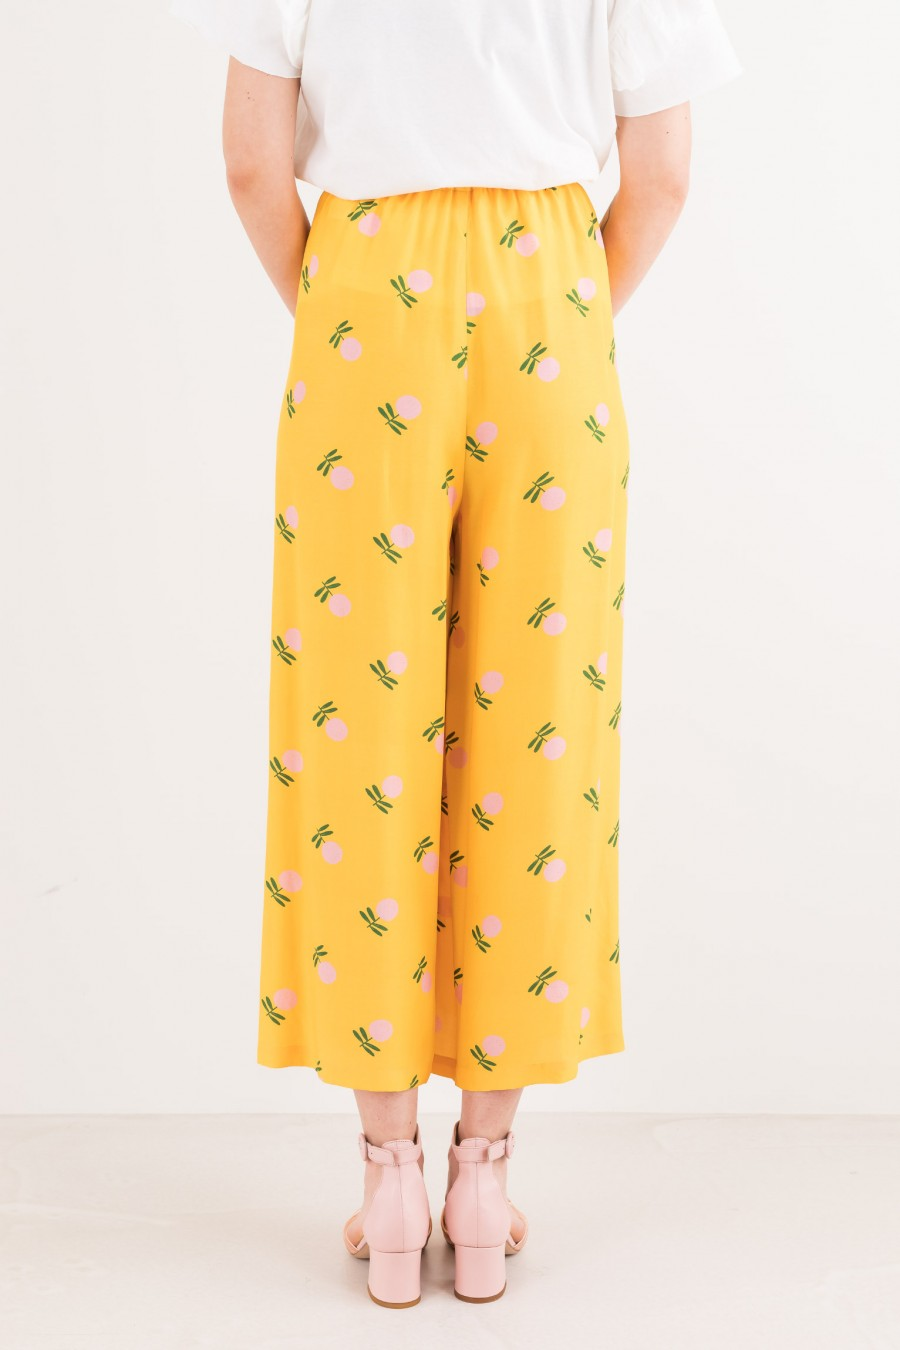 Summer yellow culottes